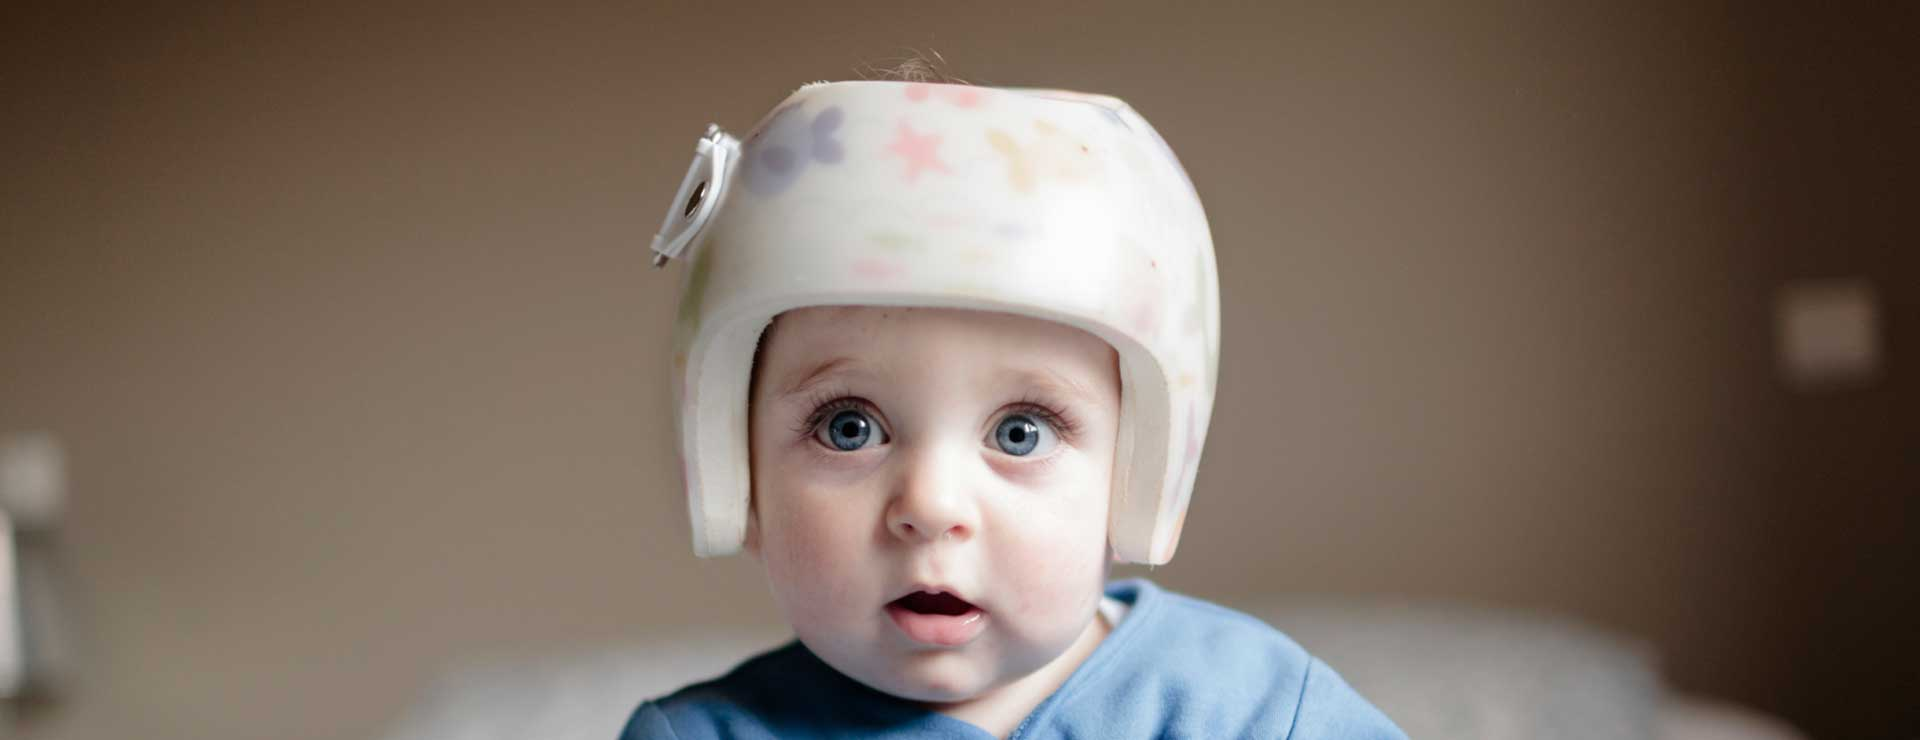 baby in helmet for plagycephaly